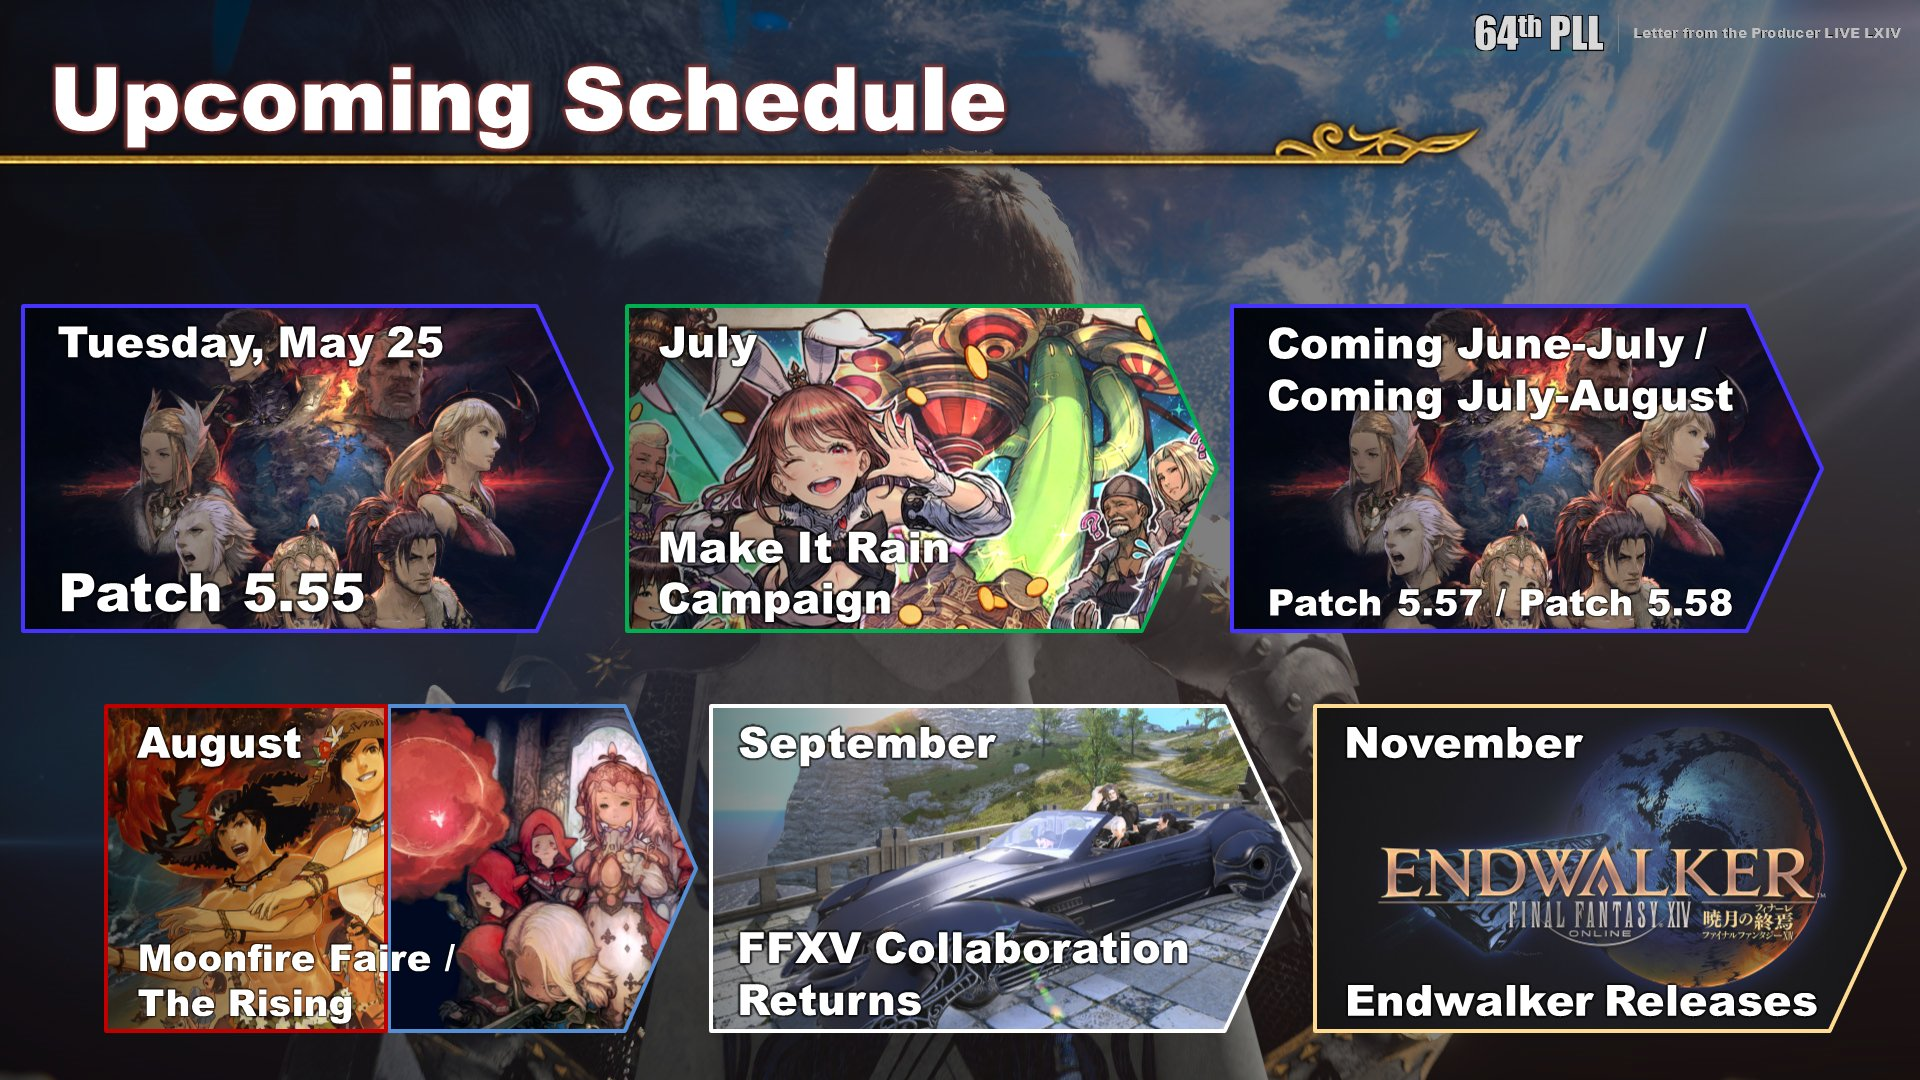 Image lists the upcoming schedule for FFXIV. Patch 5.55 planned for Tuesday, May 25. Make It Rain campaign planned for July. Patch 5.57 coming in June/July. Patch 5.58 coming in July/August. Seasonal events Moonfire Fair and The Rising planned for August. FFXV Collaboration Event returns in September. Endwalker release in November.